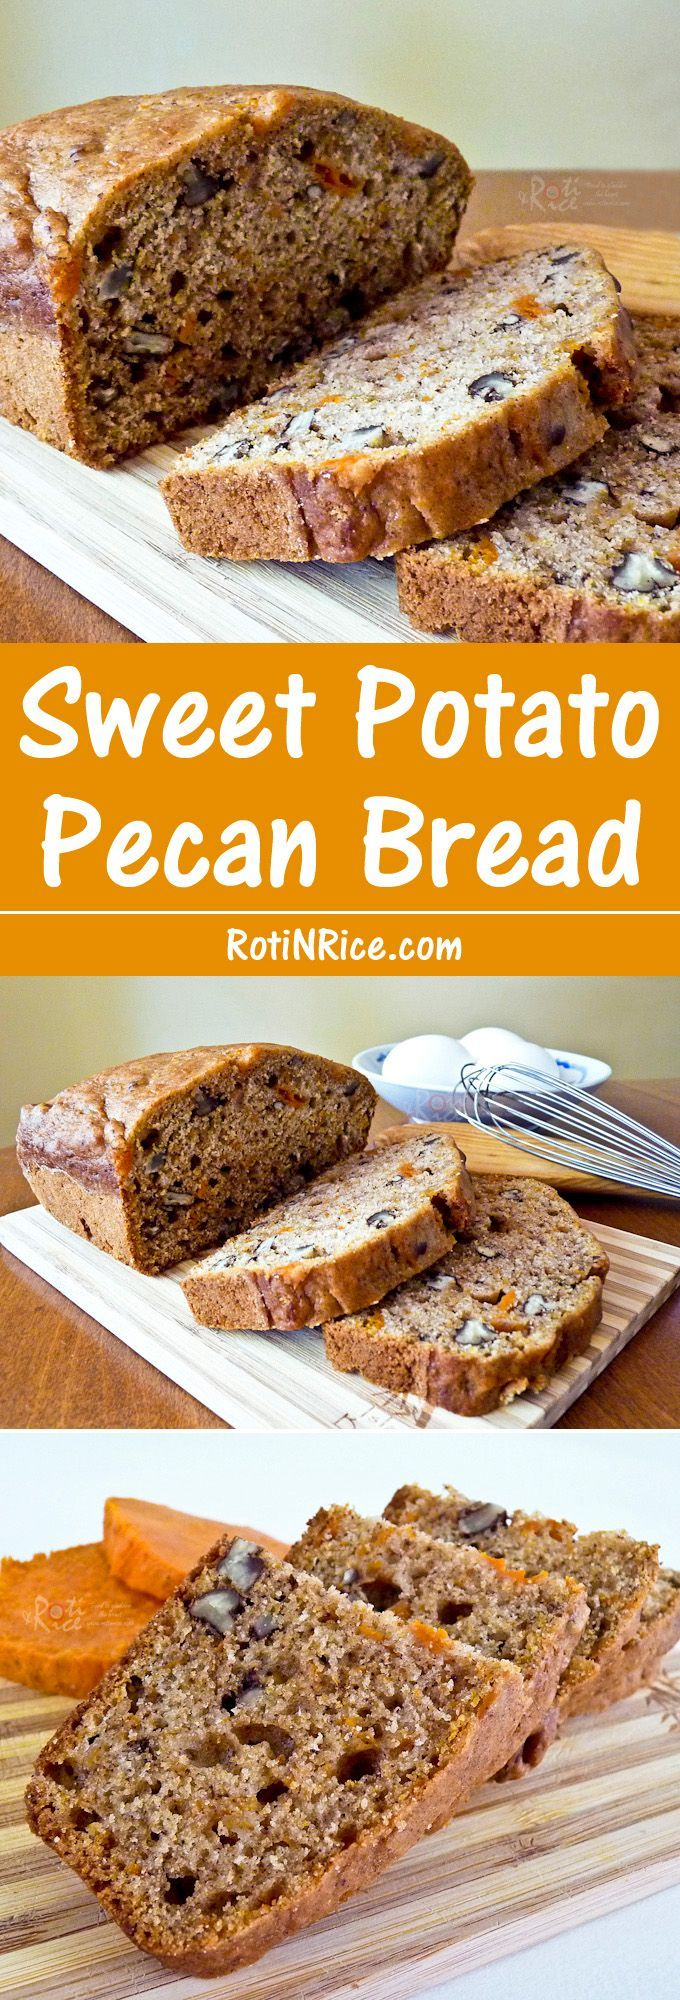 This Sweet Potato Pecan Bread was inspired by the autumn favorite, candied sweet potatoes. It is moist, fragrant, and delicious served warm. | RotiNRice.com